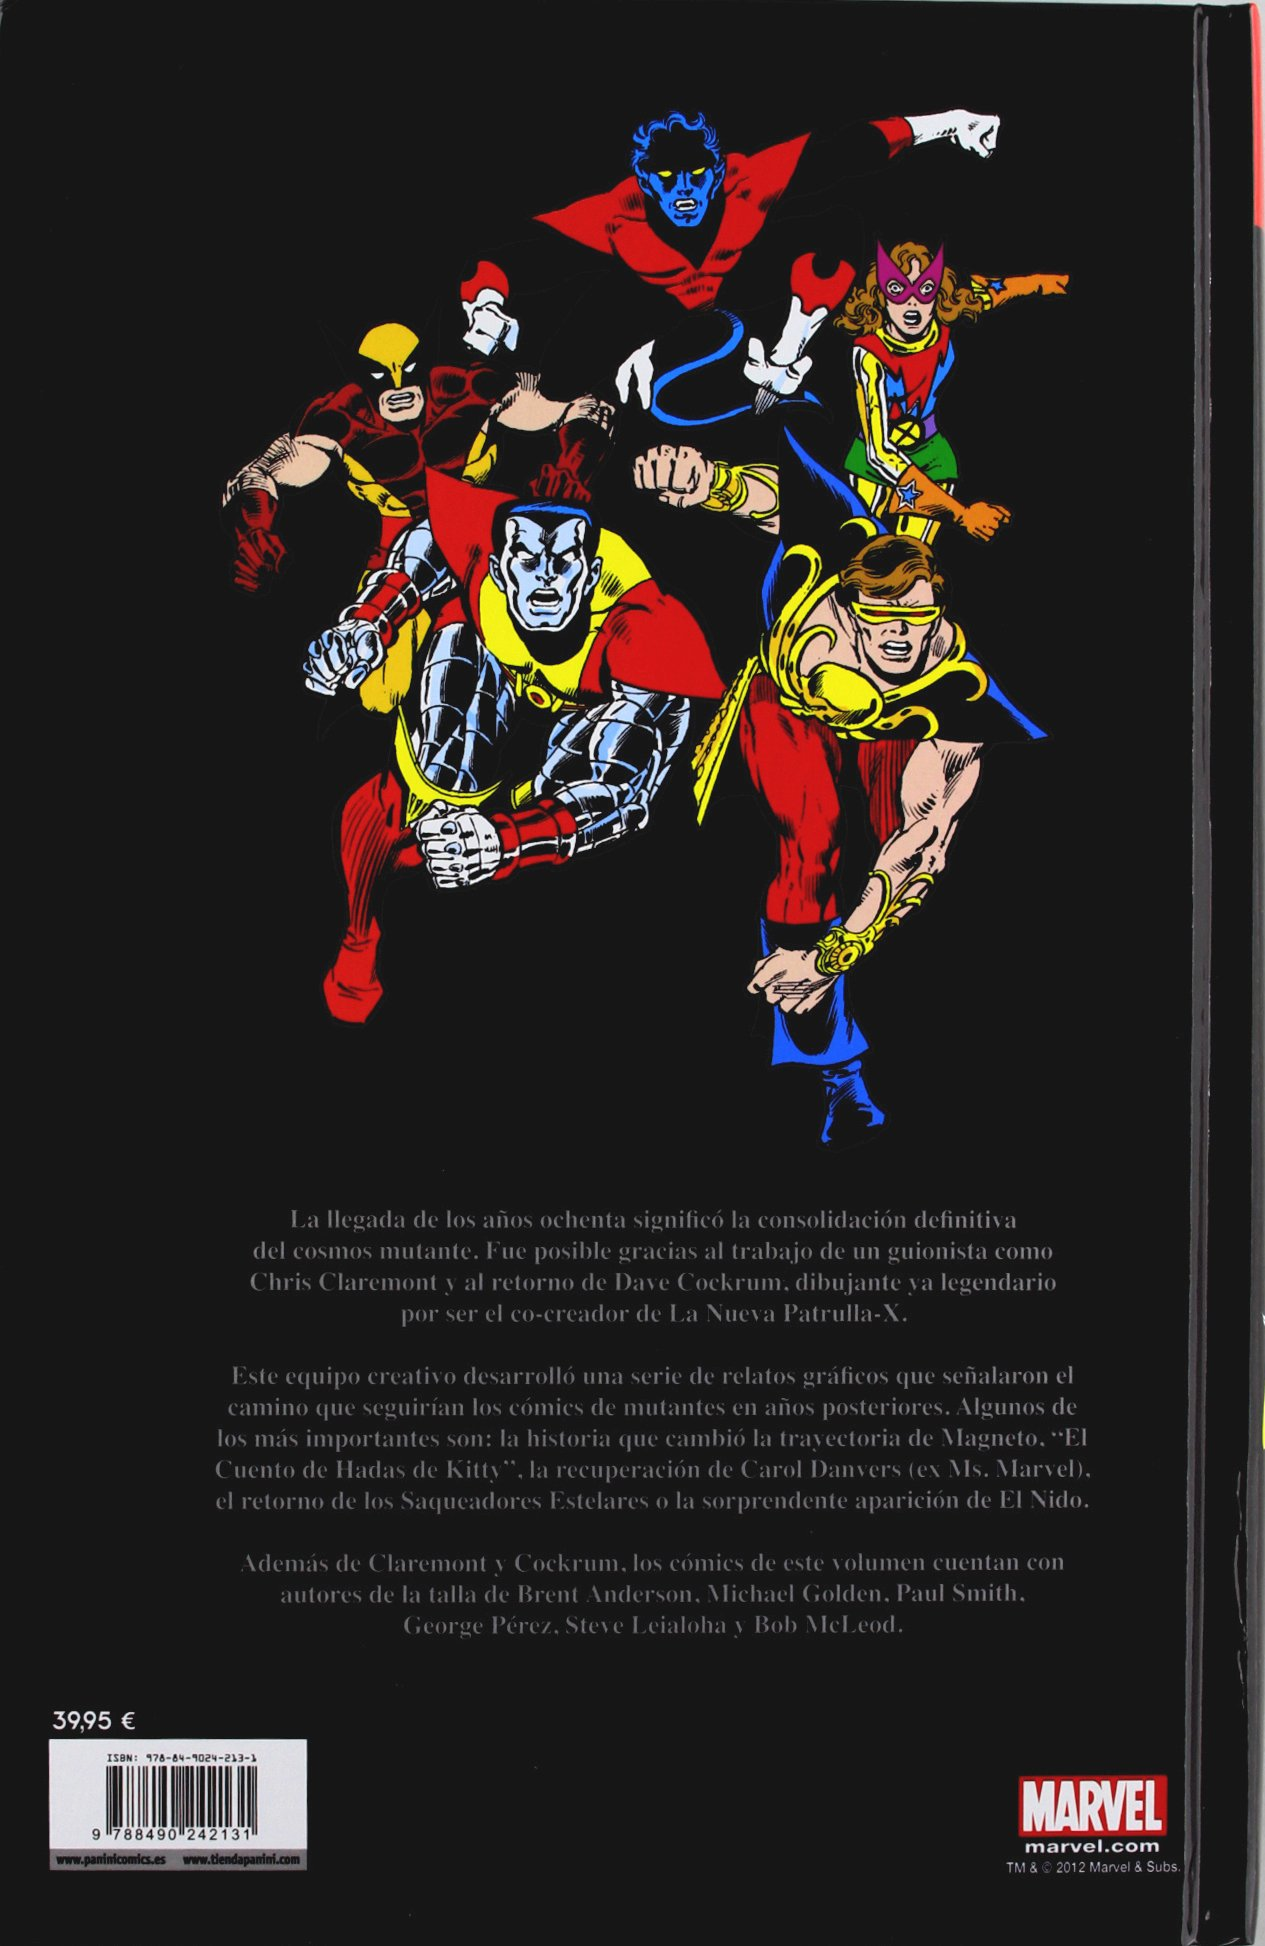 La Imposible Patrulla-X 3. Yo Magneto: Amazon.es: Chris Claremont: Libros